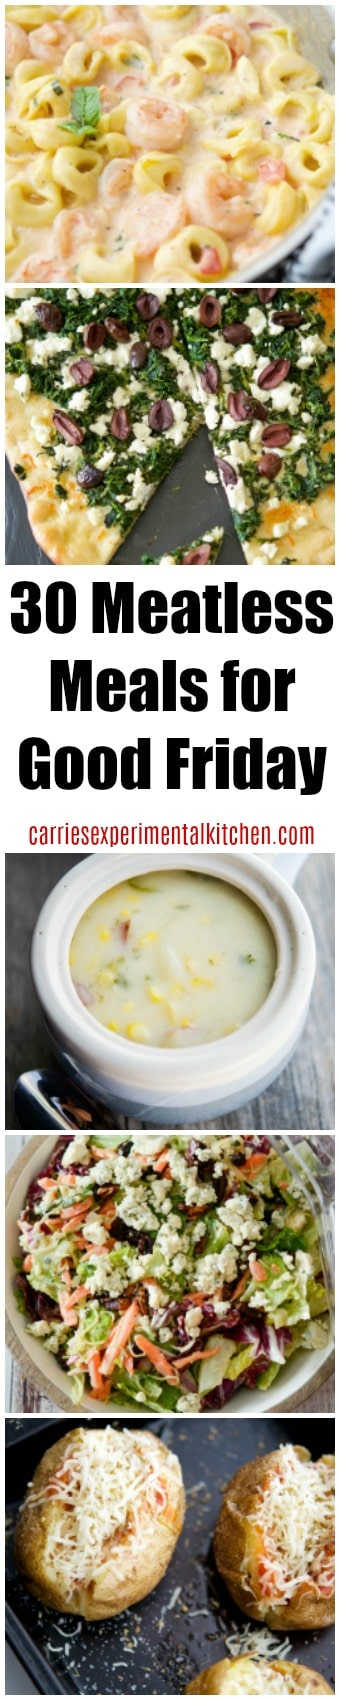 Here are 30 Meatless Meals for your Good Friday menu planning including Soup, Salad/Sandwiches, Pizza/Flatbreads, Pasta, Meatless and of course, Seafood to help plan your day. #easter #meatless #goodfriday